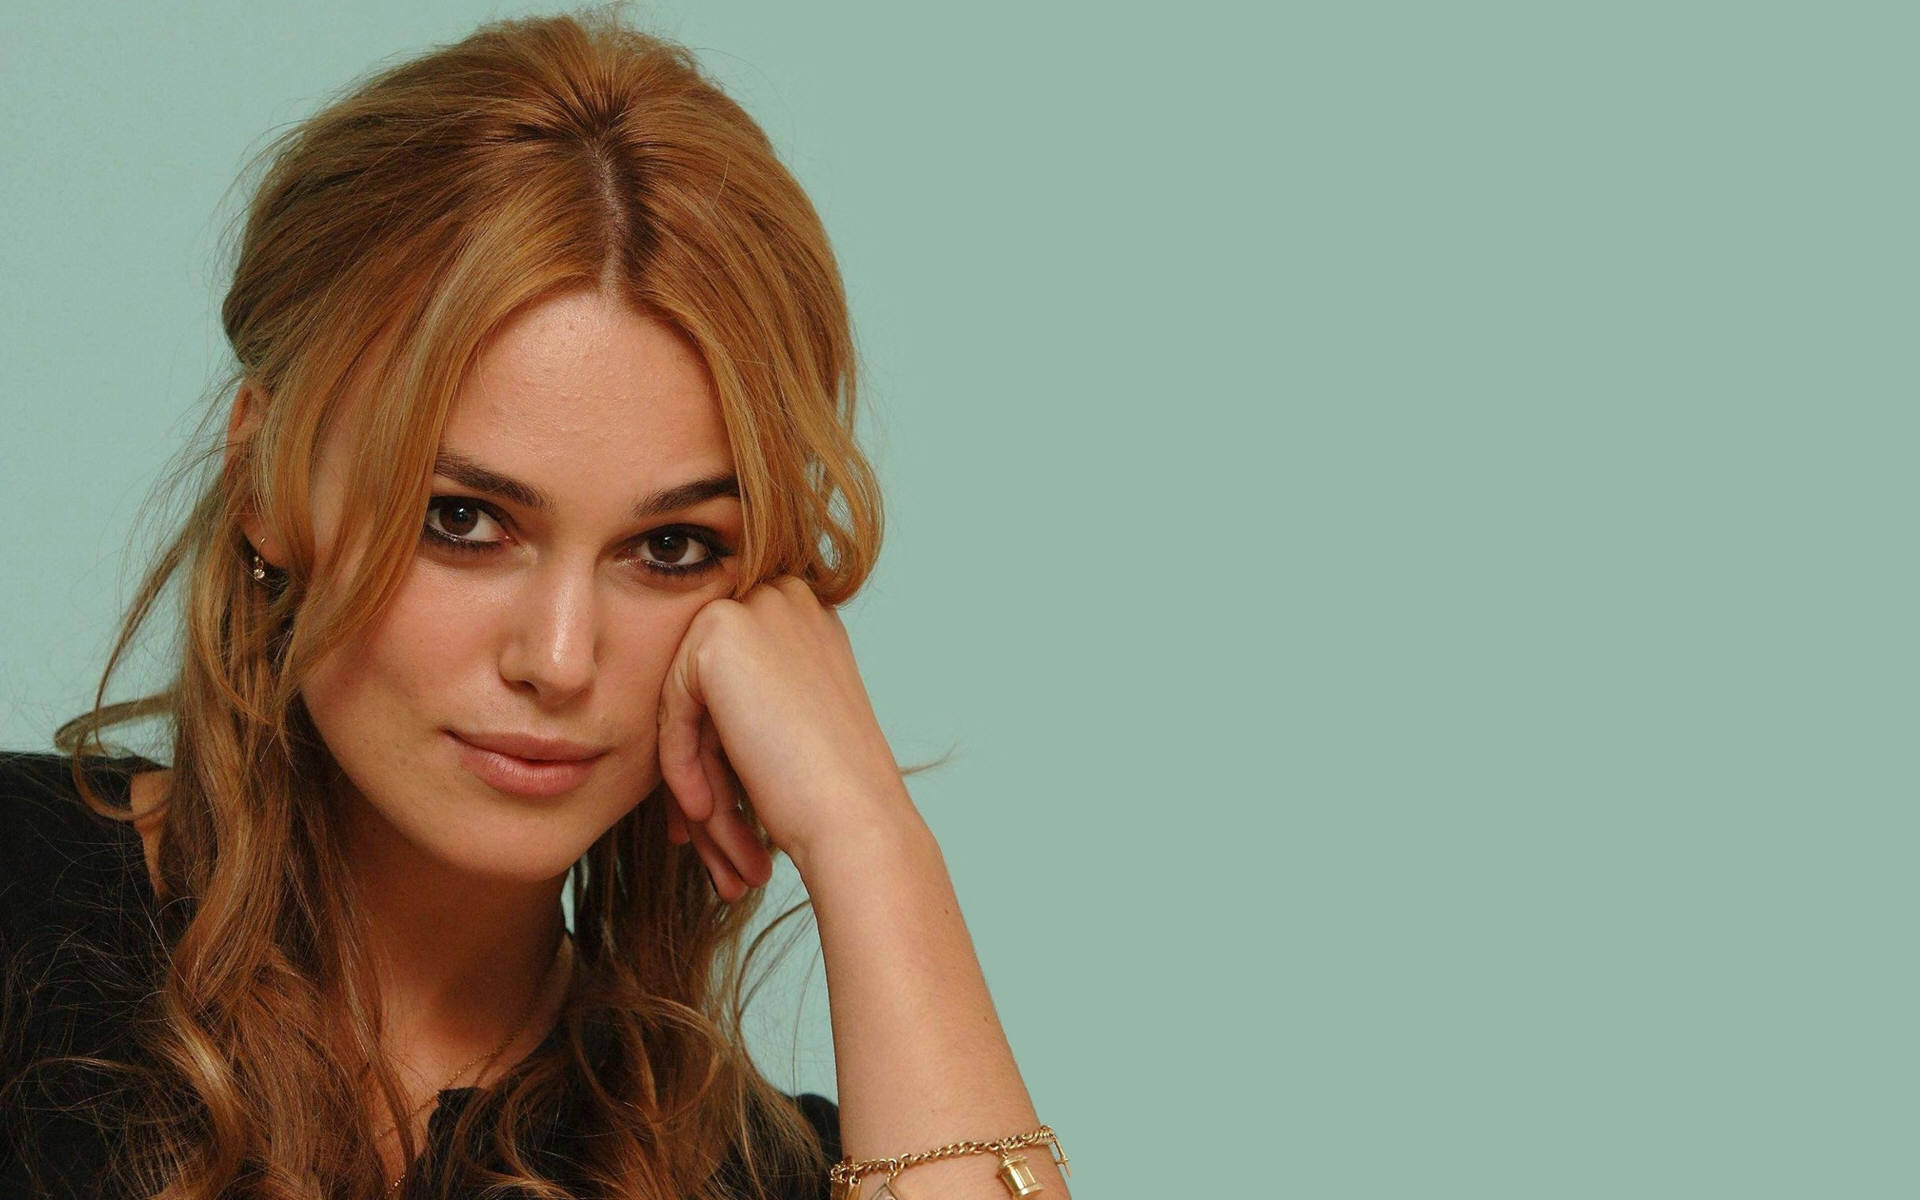 Keira Knightley wallpapers HD Pretty Face